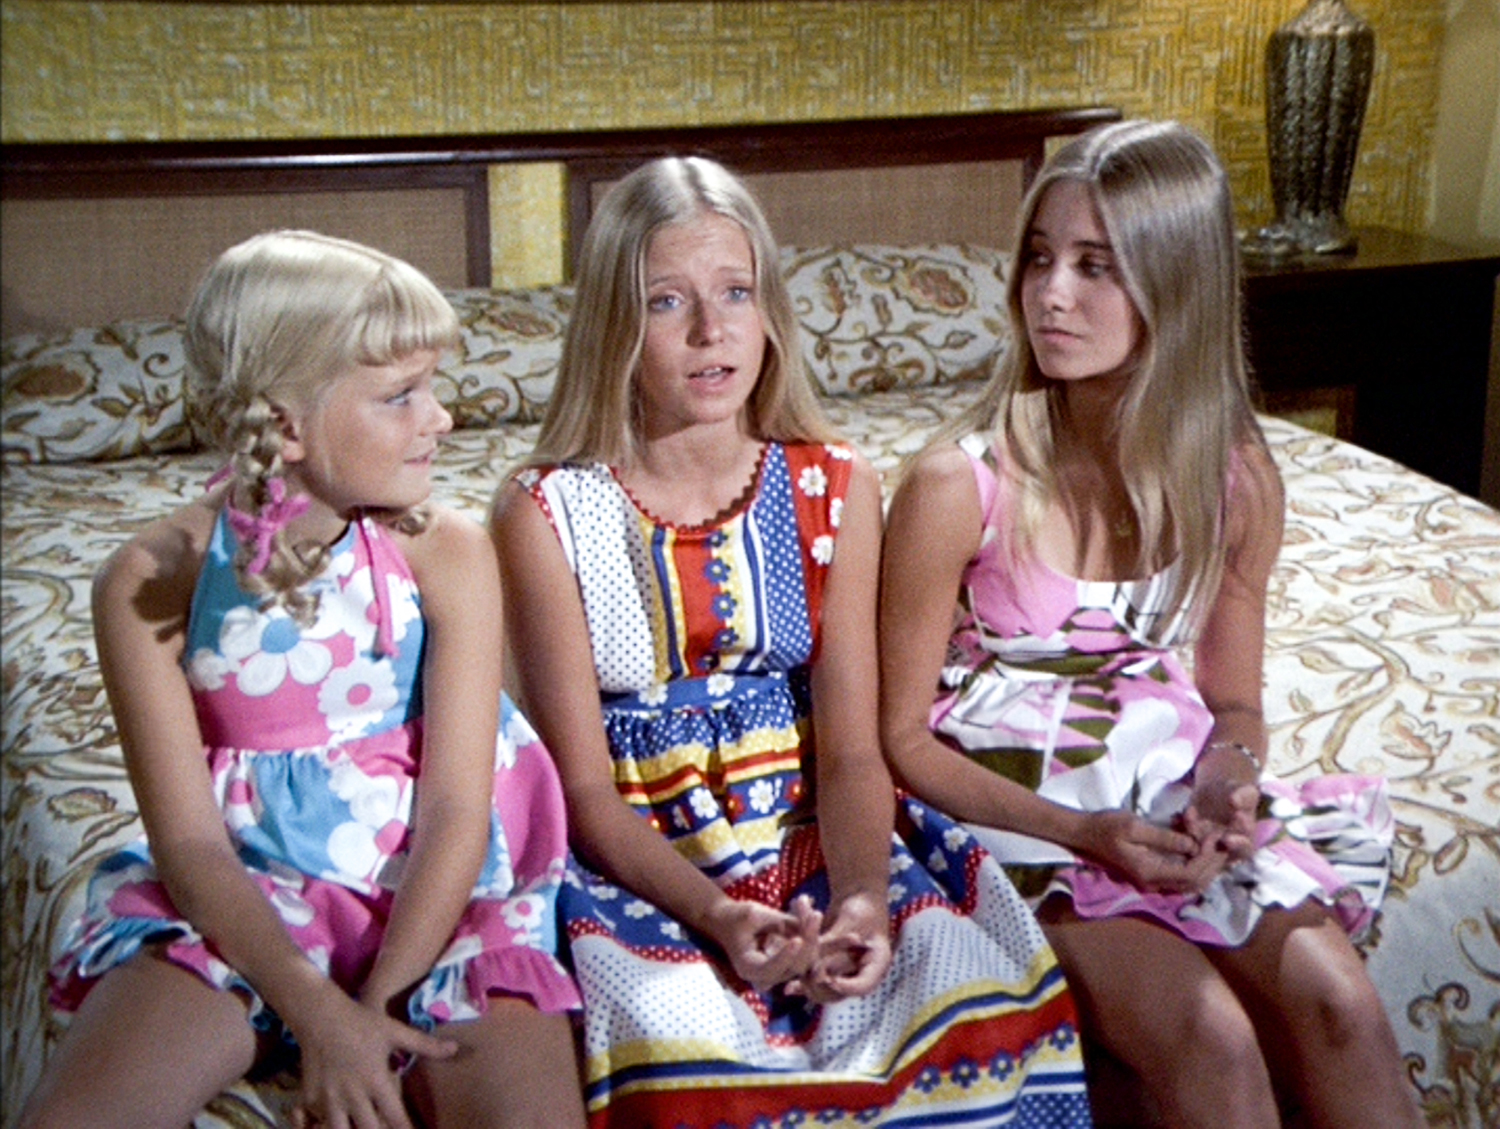 Brady Bunch Sisters and Being a Middle Child